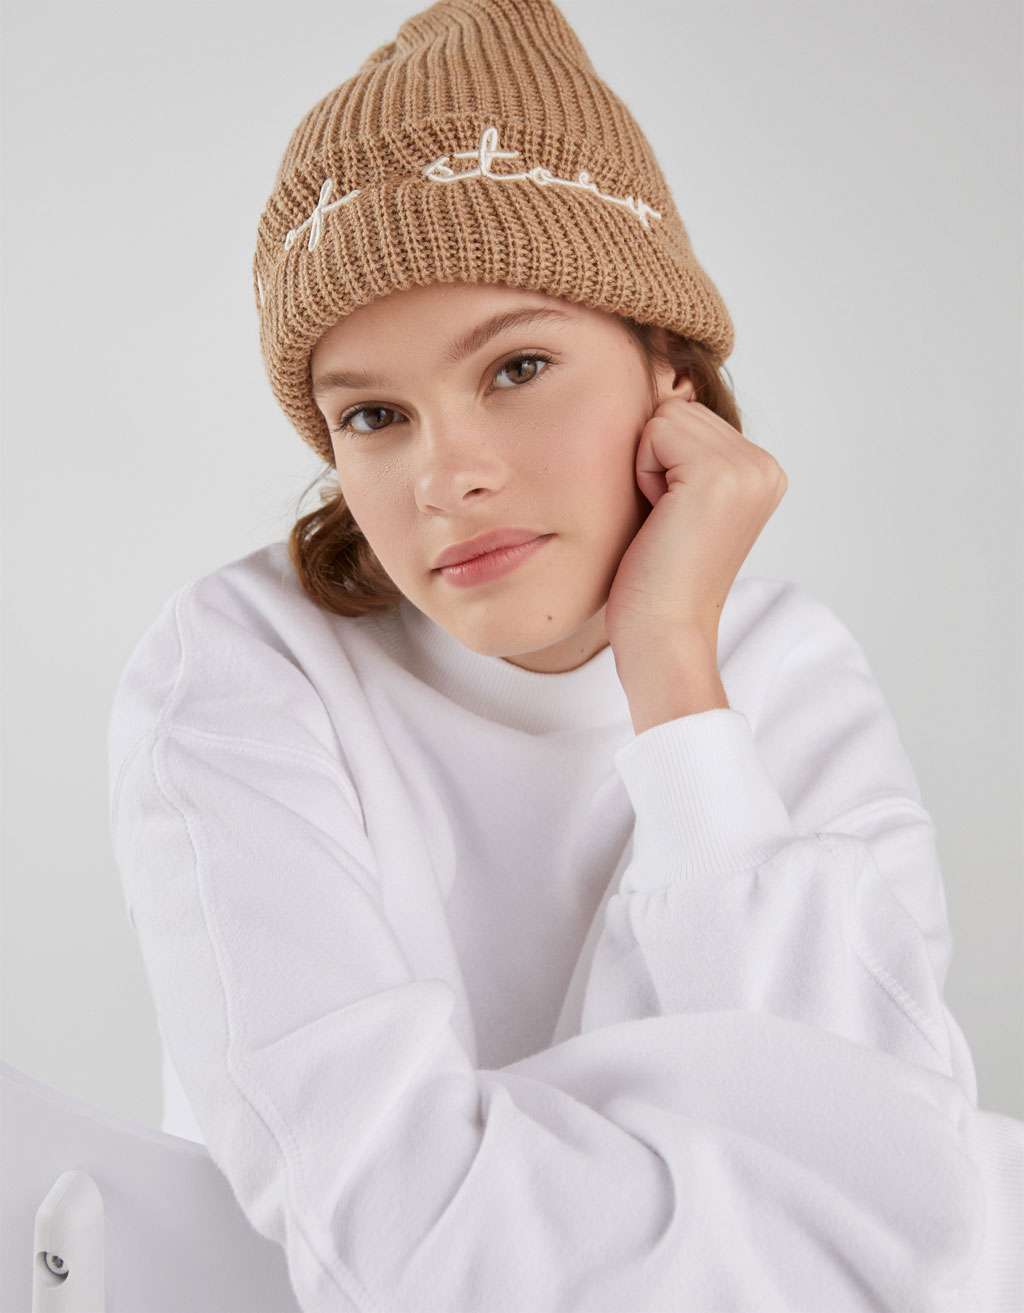 Knit beanie with slogan